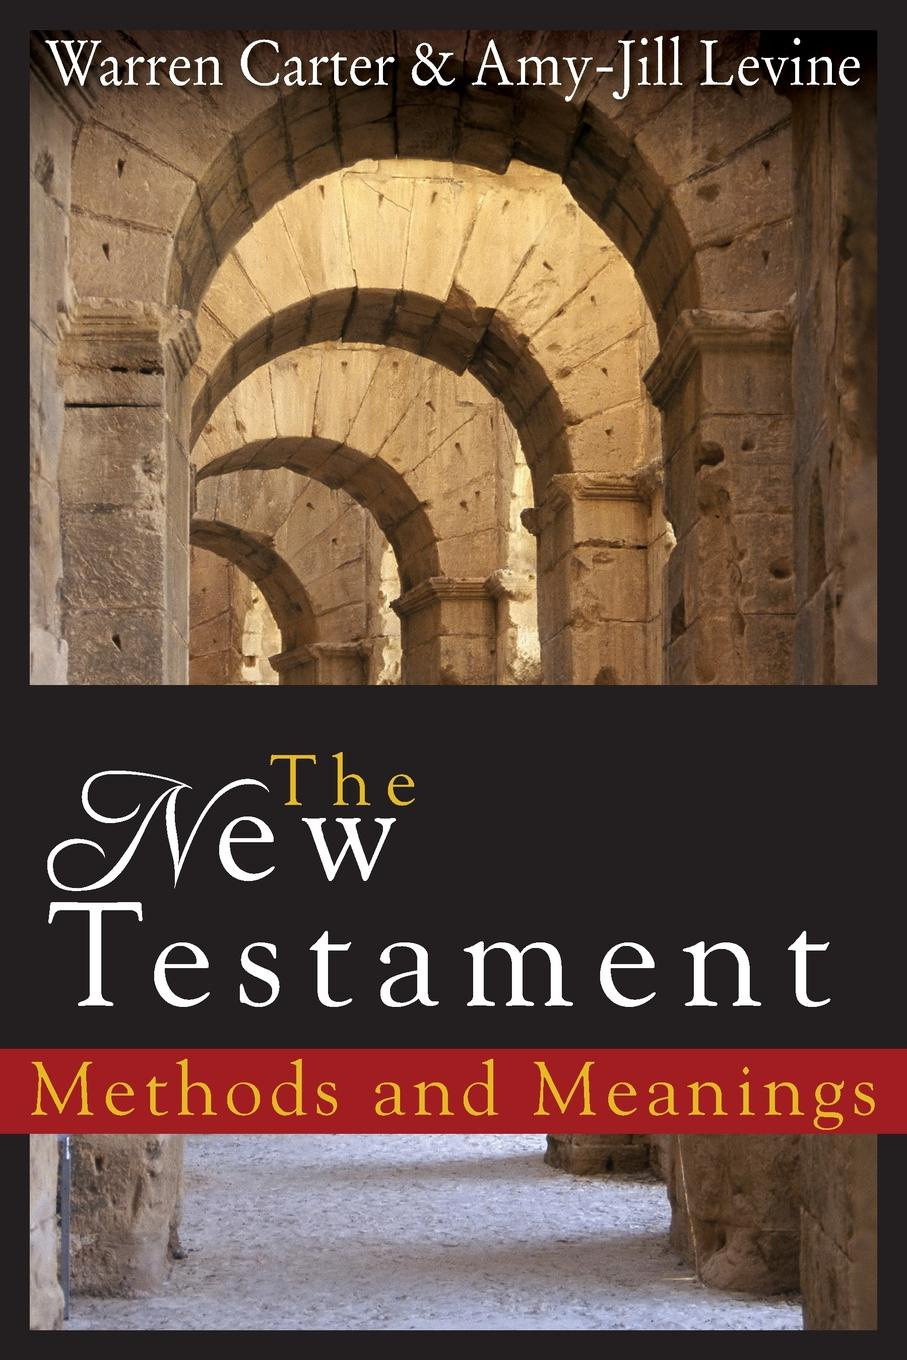 Warren Carter, Amy-Jill Levine The New Testament. Methods and Meanings